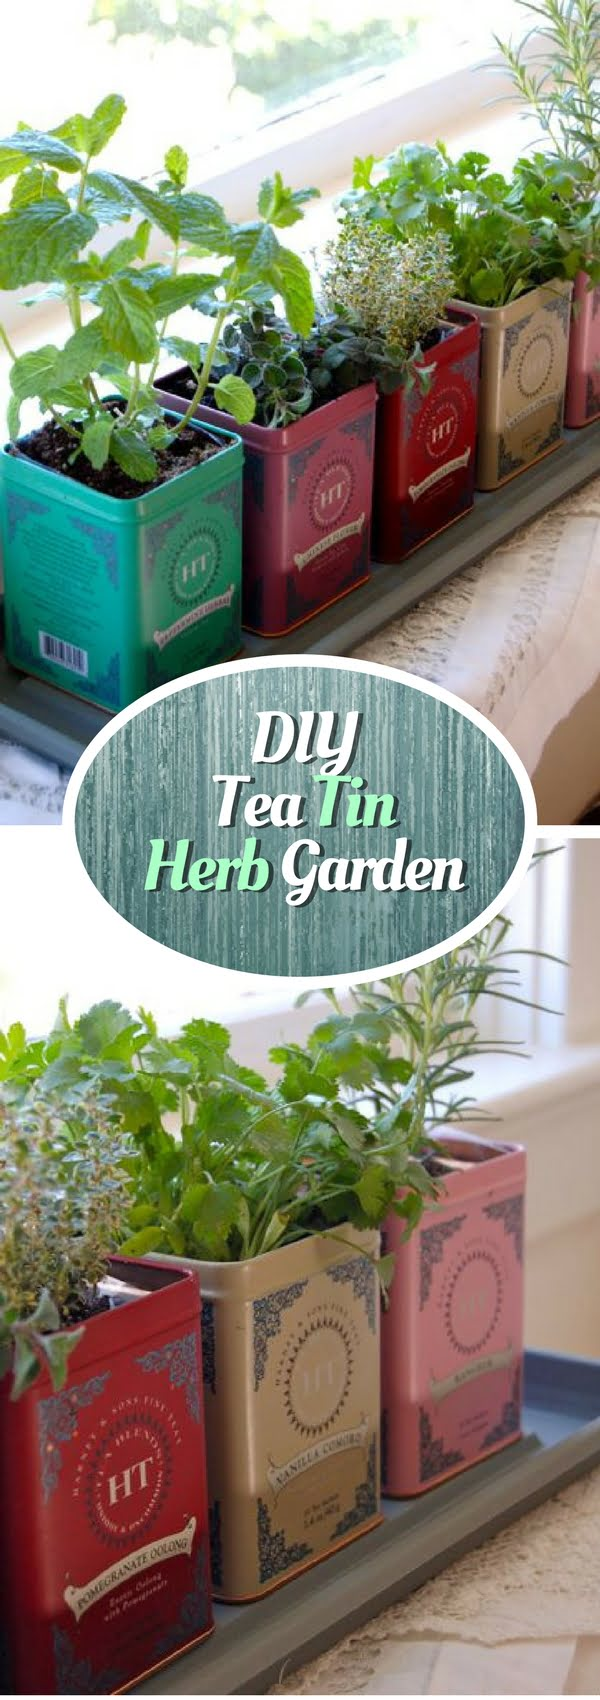 How to make a DIY herb garden form tea tin cans